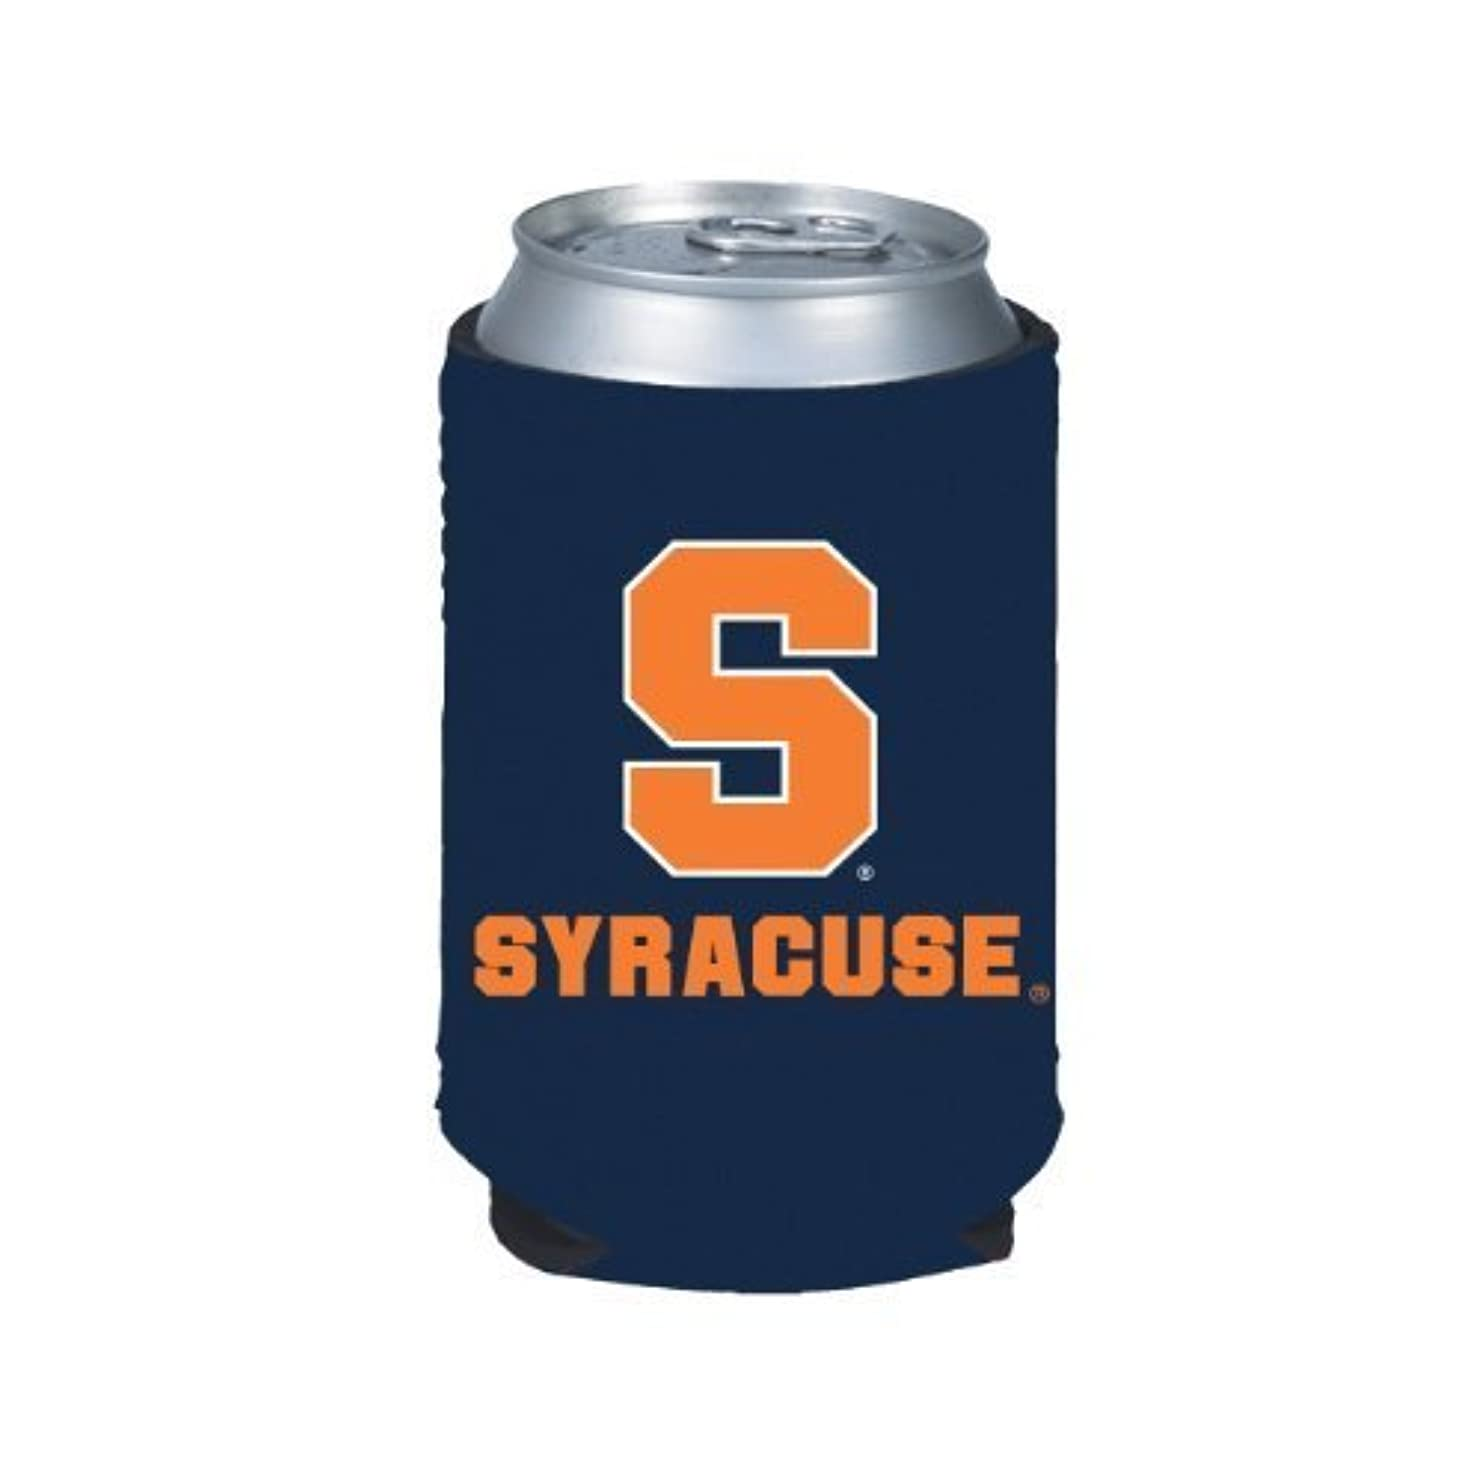 むしろ暖かさ醸造所SYRACUSE ORANGE NCAA CAN KADDY KOOZIE COOZIE COOLER